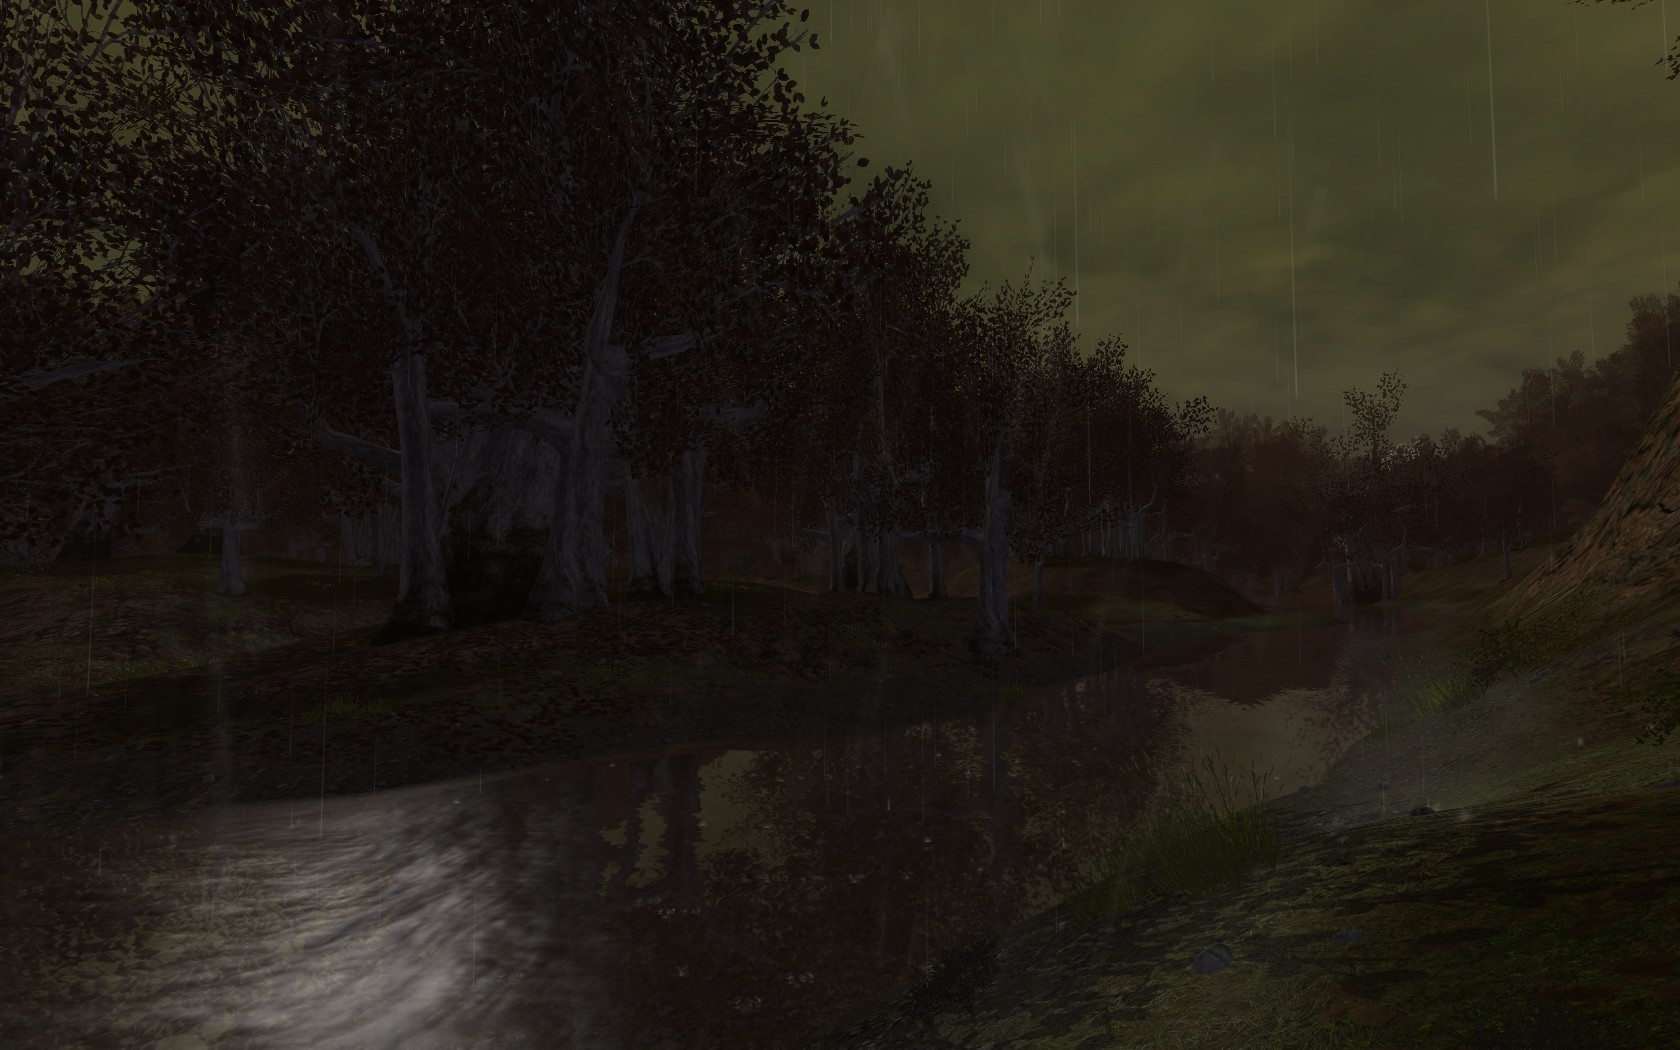 Lord of the Rings Online - A river in Enedwaith during a storm